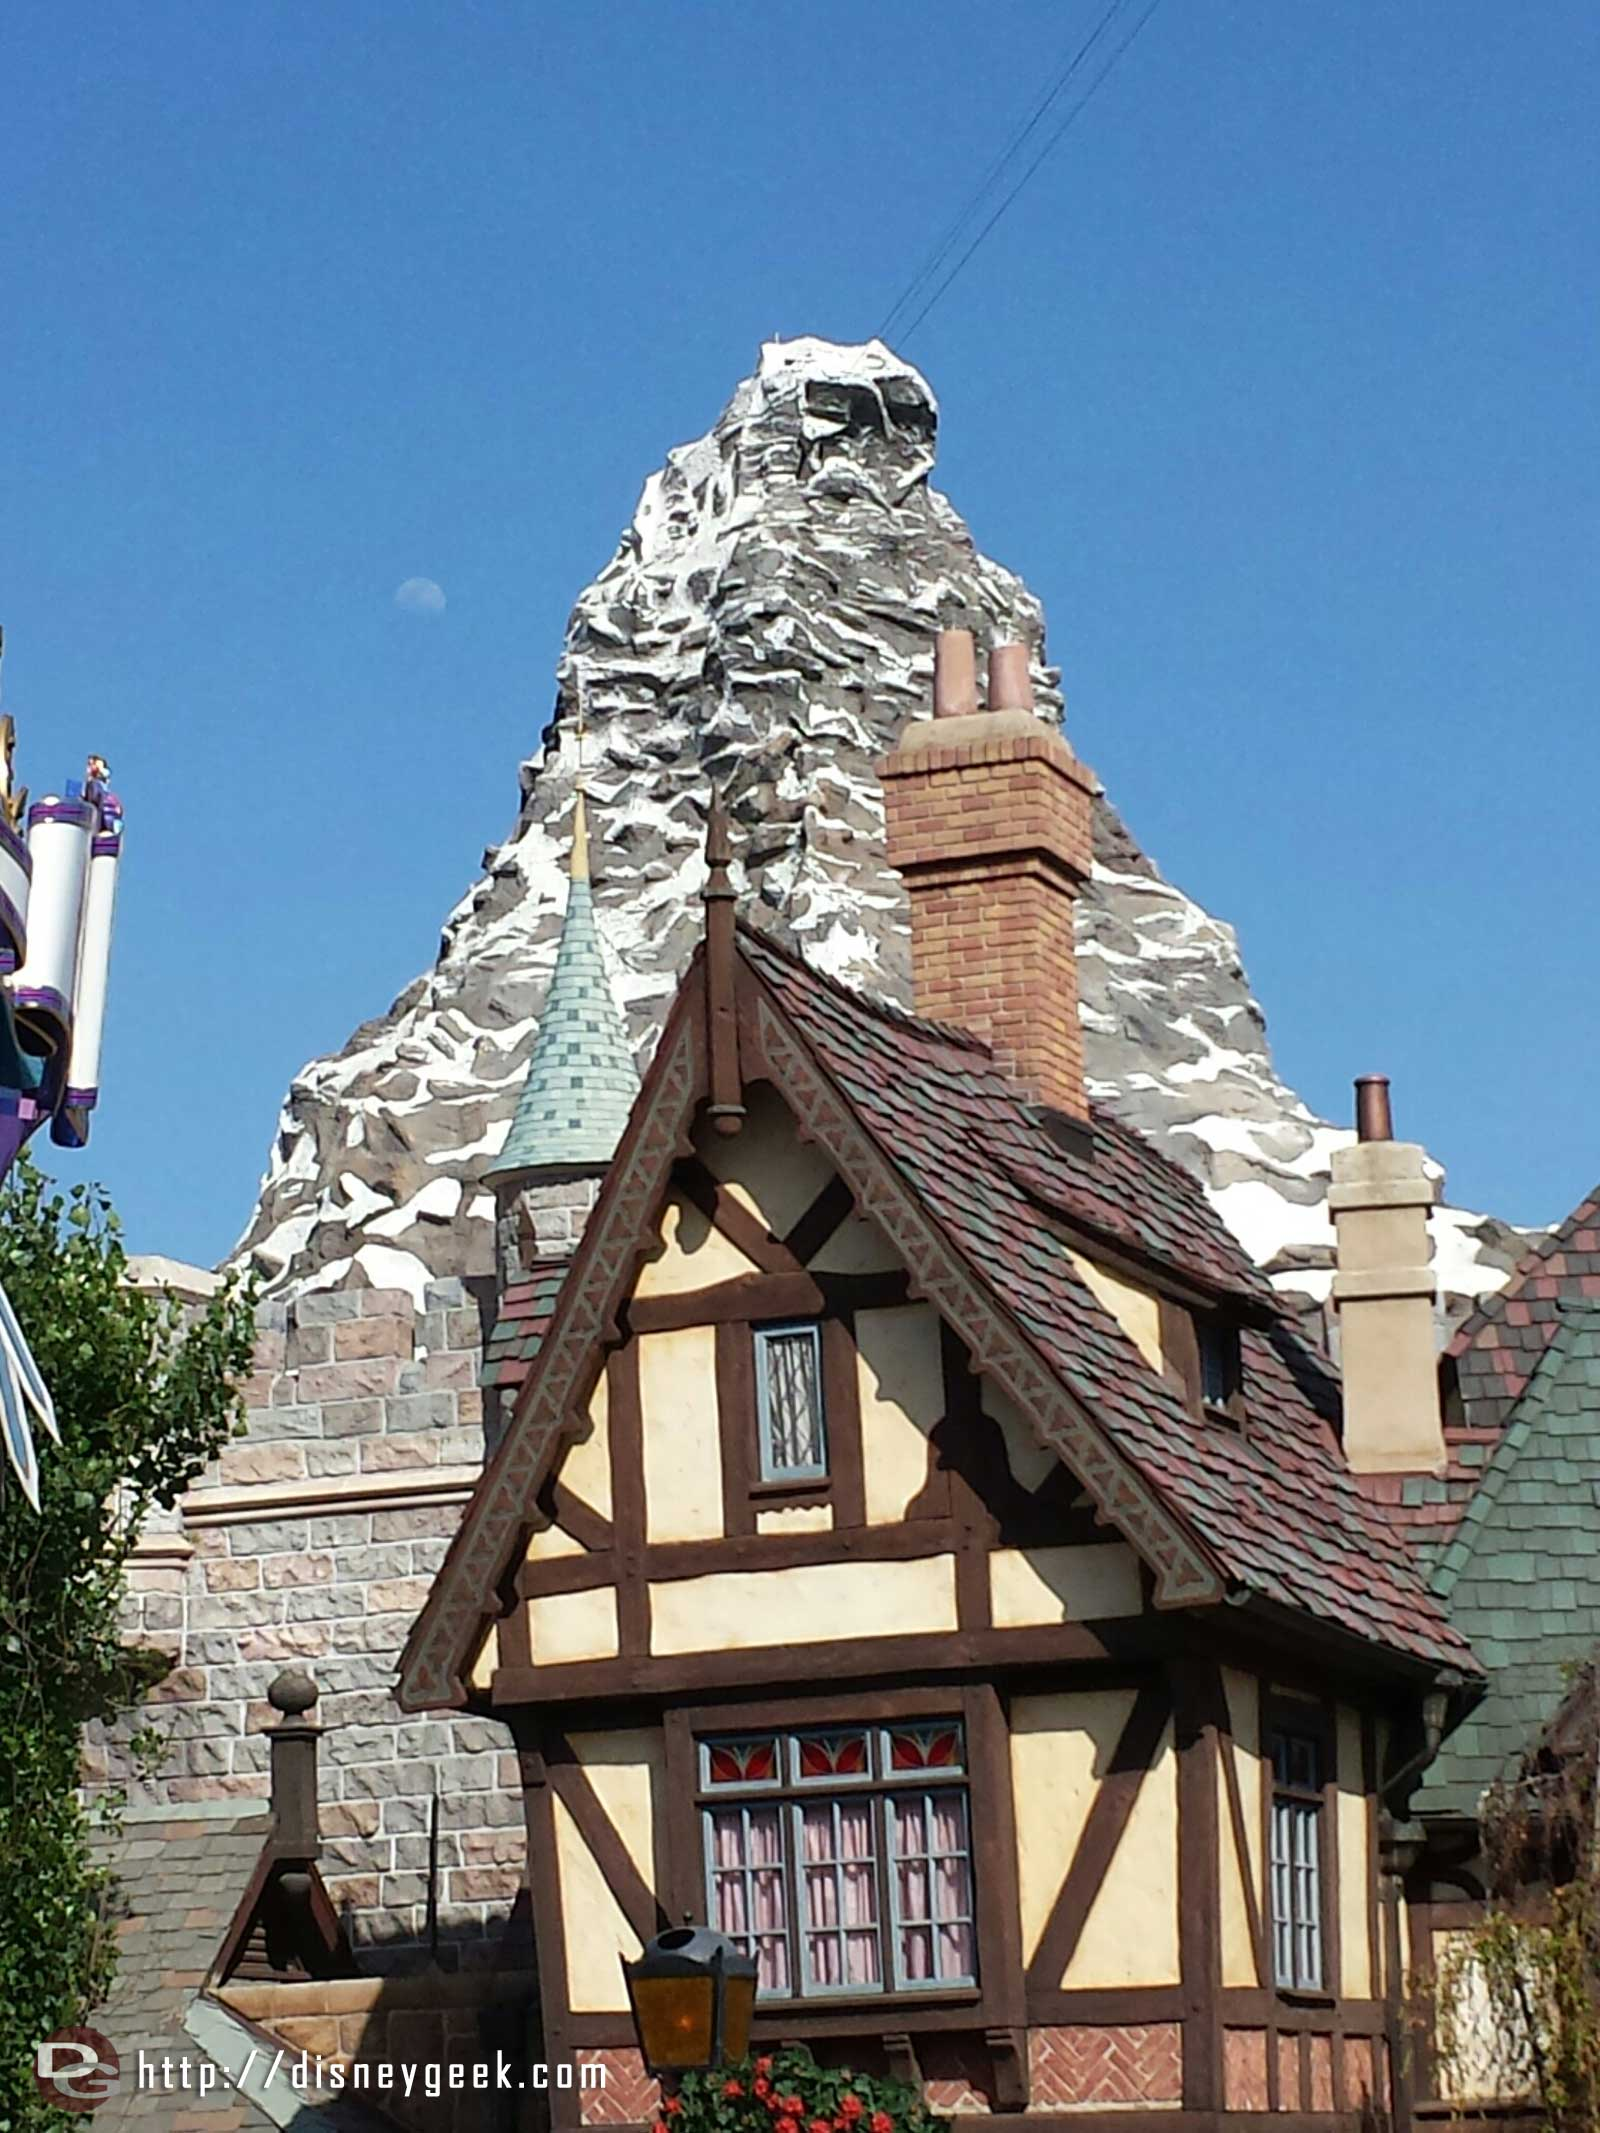 The moon is already visible above the Matterhorn